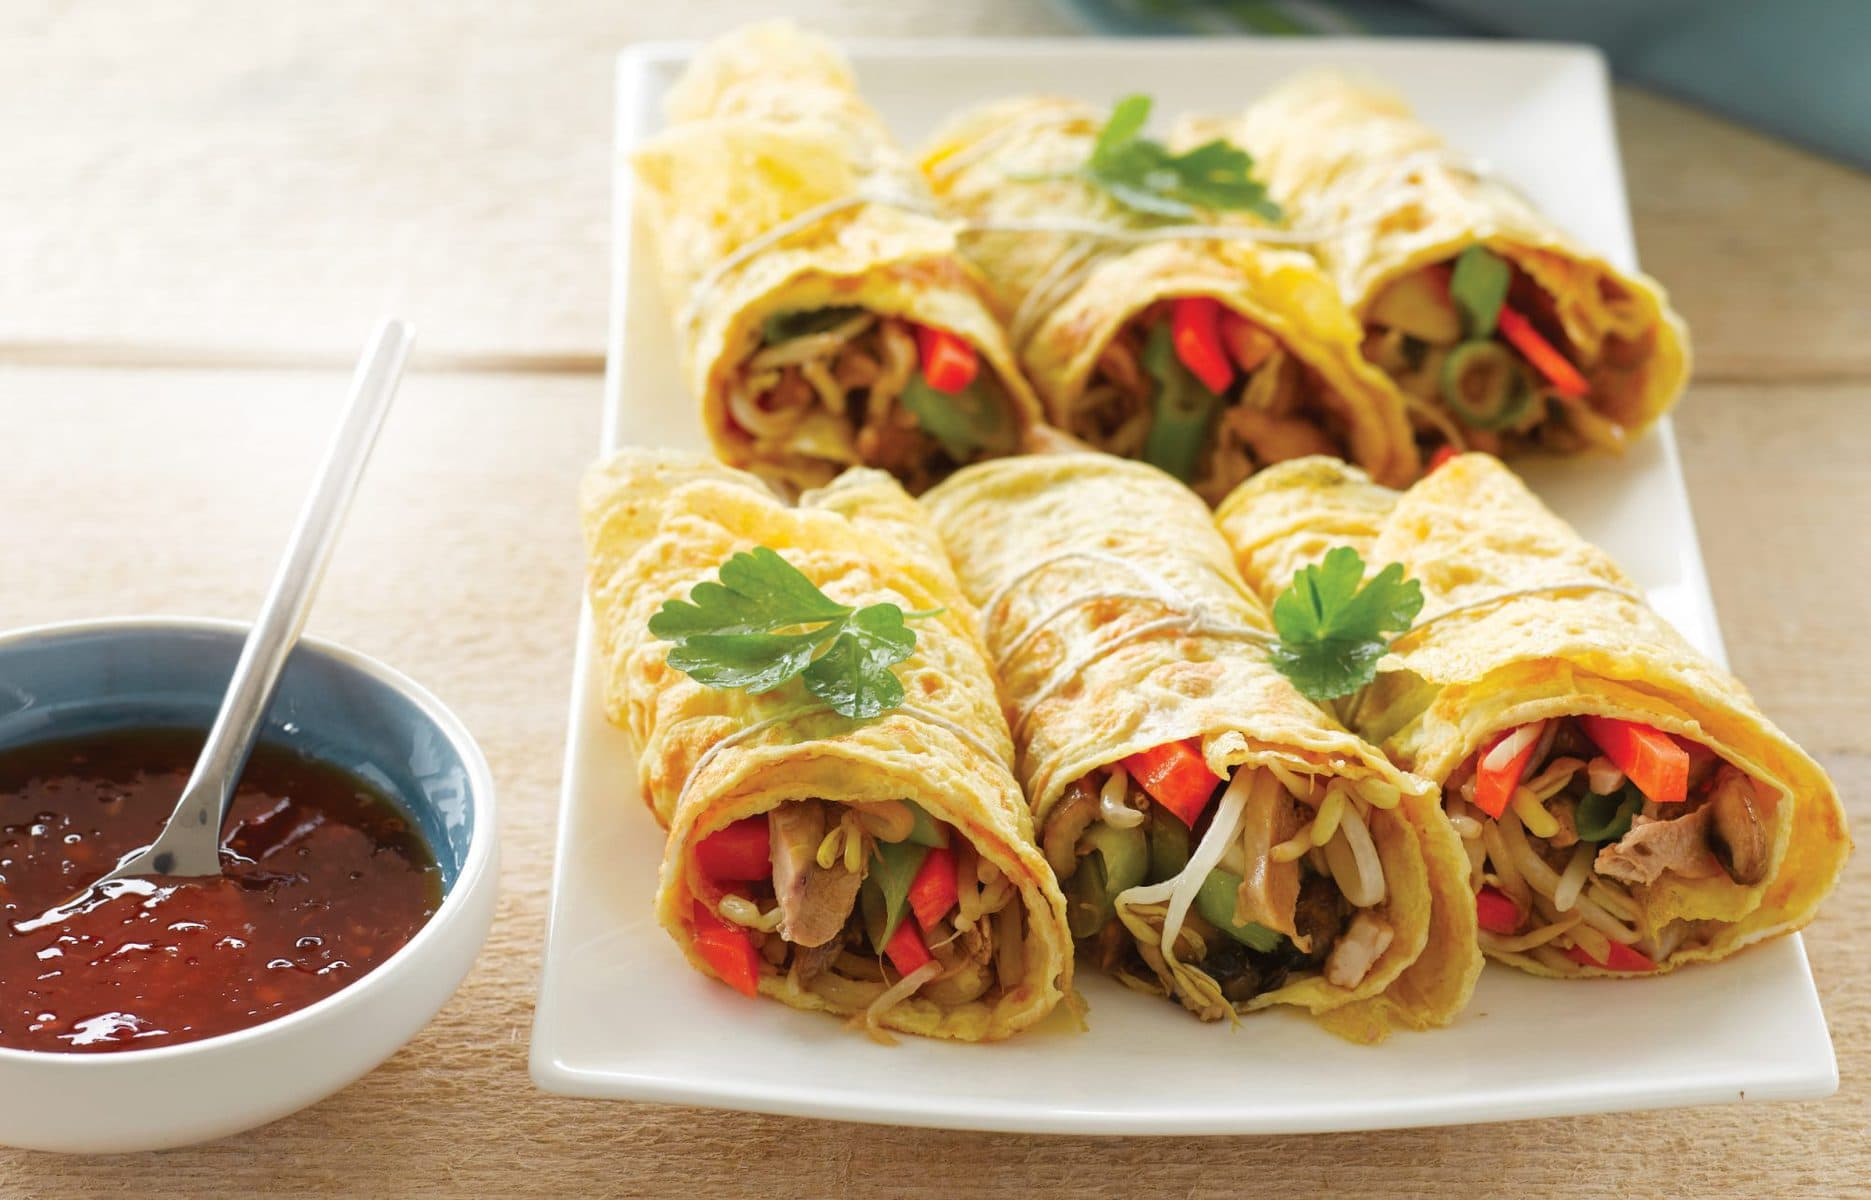 Chinese-style omelette wraps